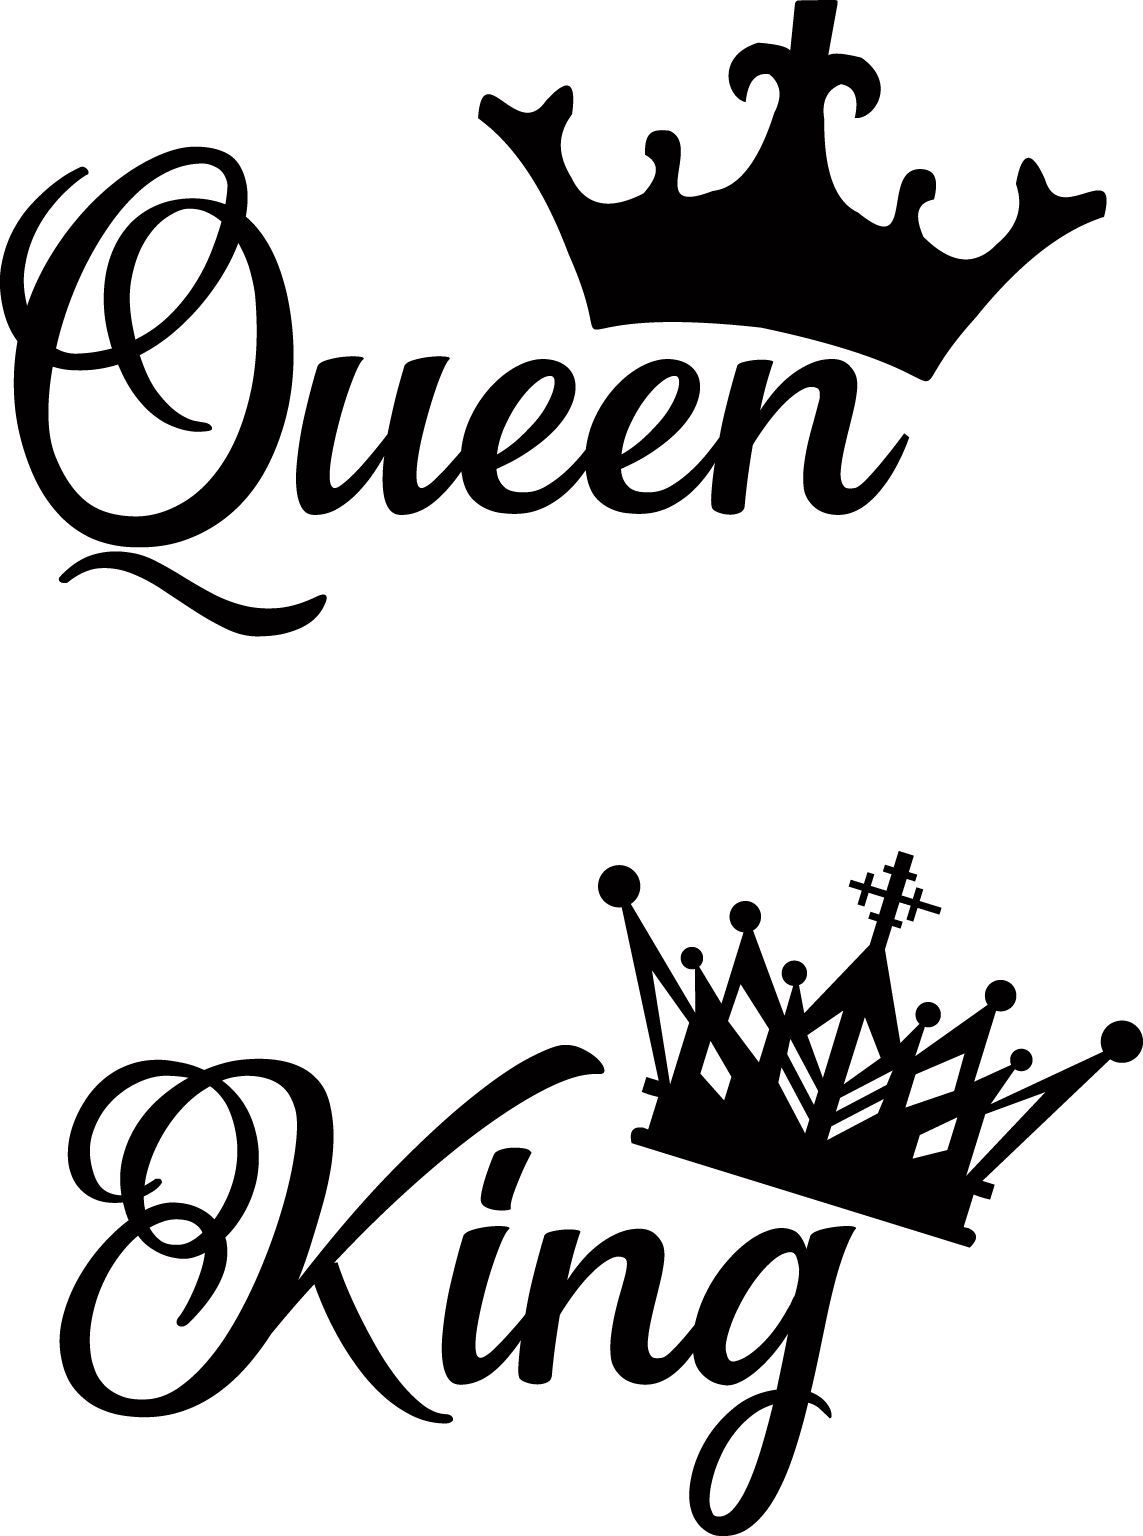 King And Queen Drawings : queen, drawings, ARCHIVOS, COMPARTIDOS:, Vectores, Reine, Crown, Tattoo, Design,, Queen, Tattoo,, Drawing